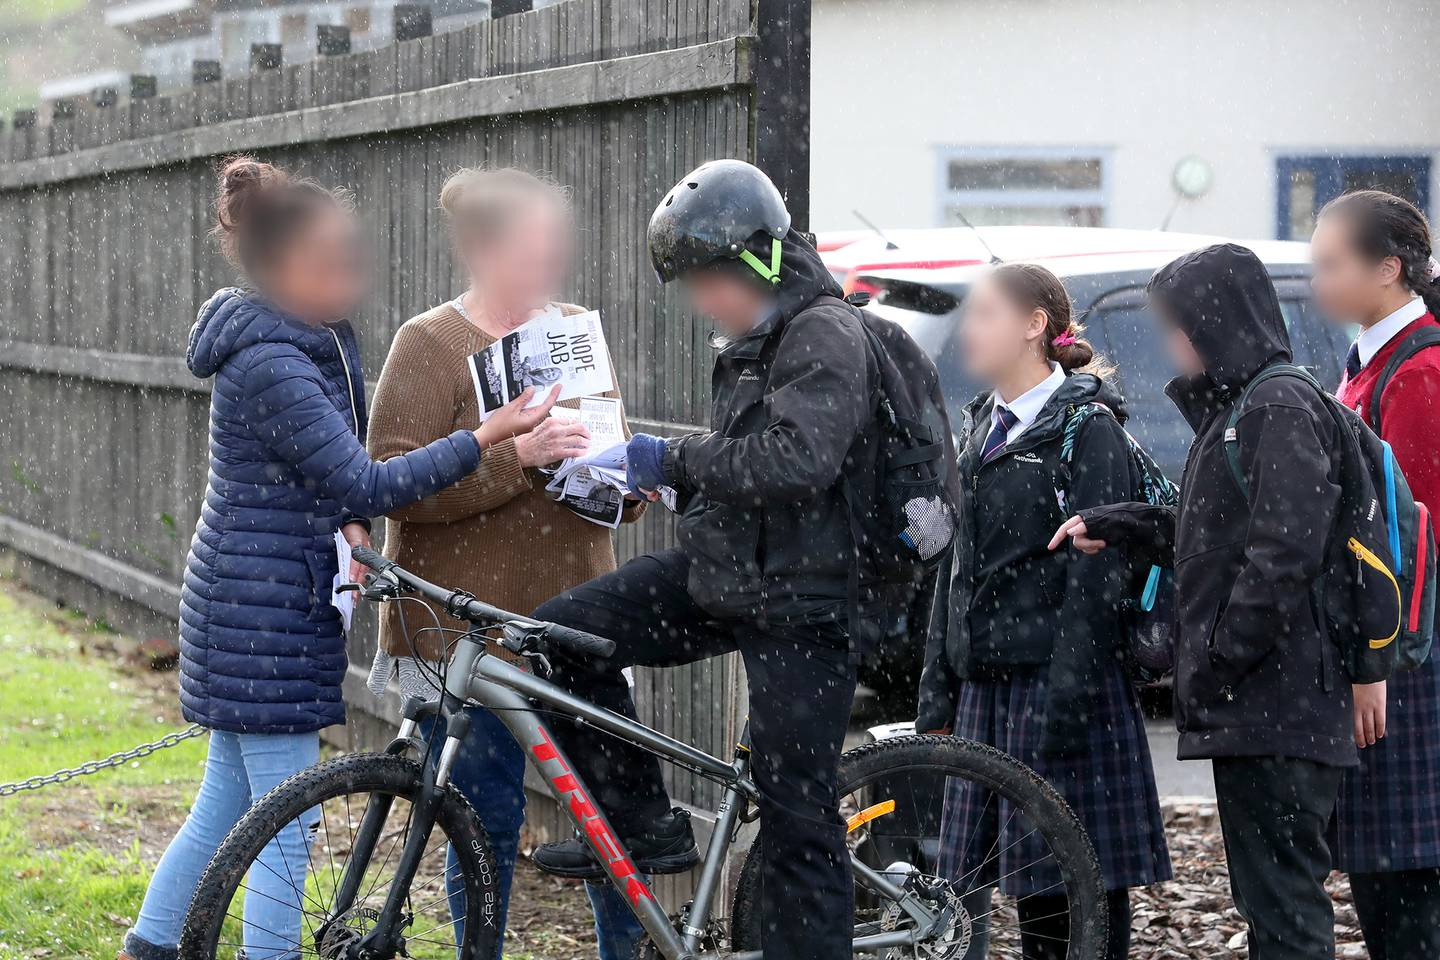 The protestors attempted to pass on misinformation pamphlets, stating that side effects of the...